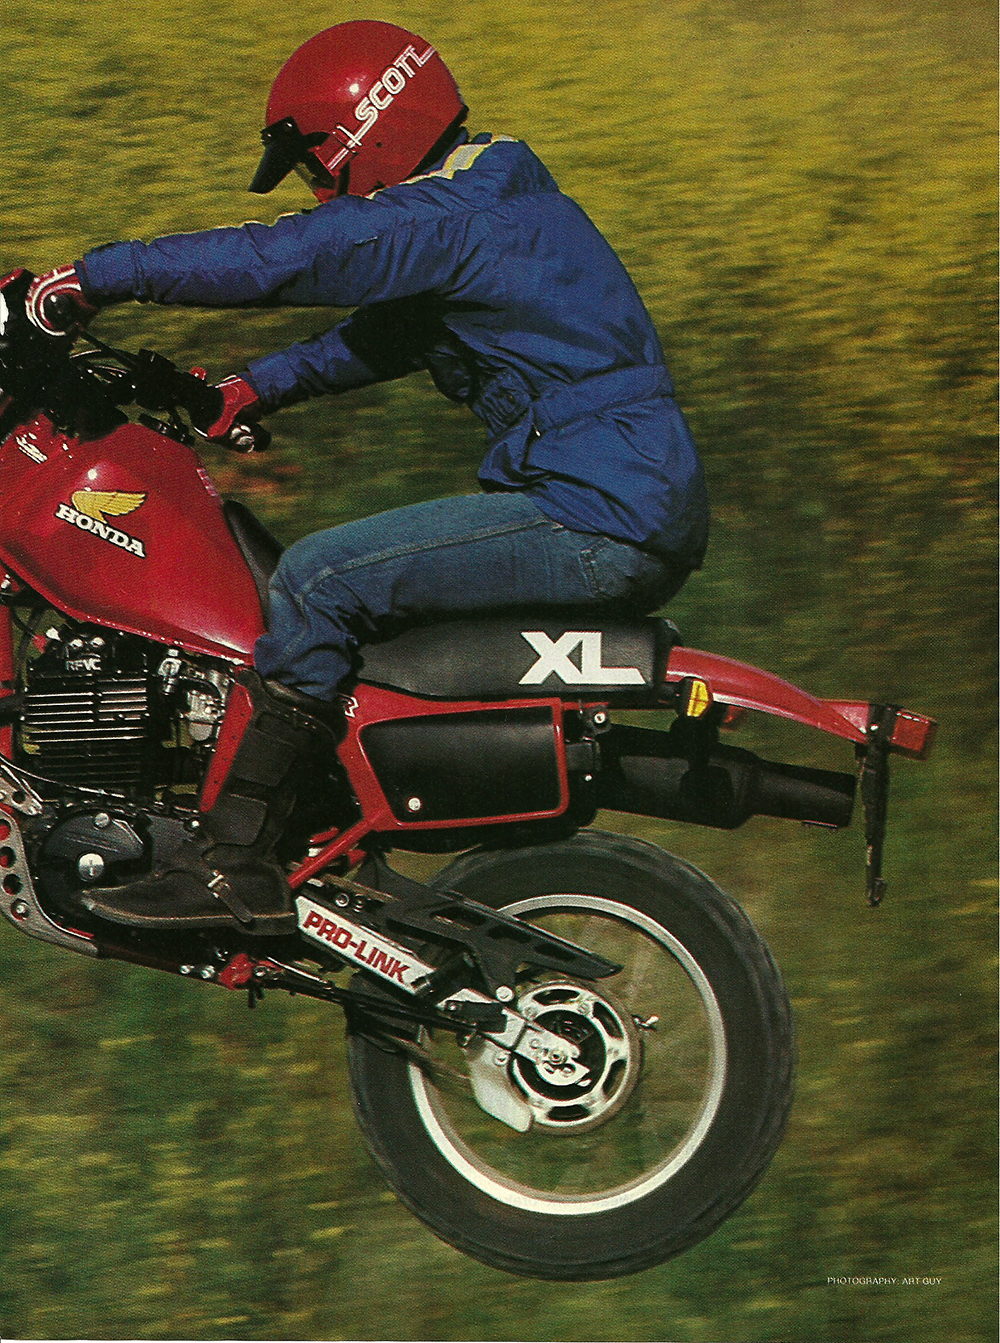 1983 Honda XL600R road test 2.jpg